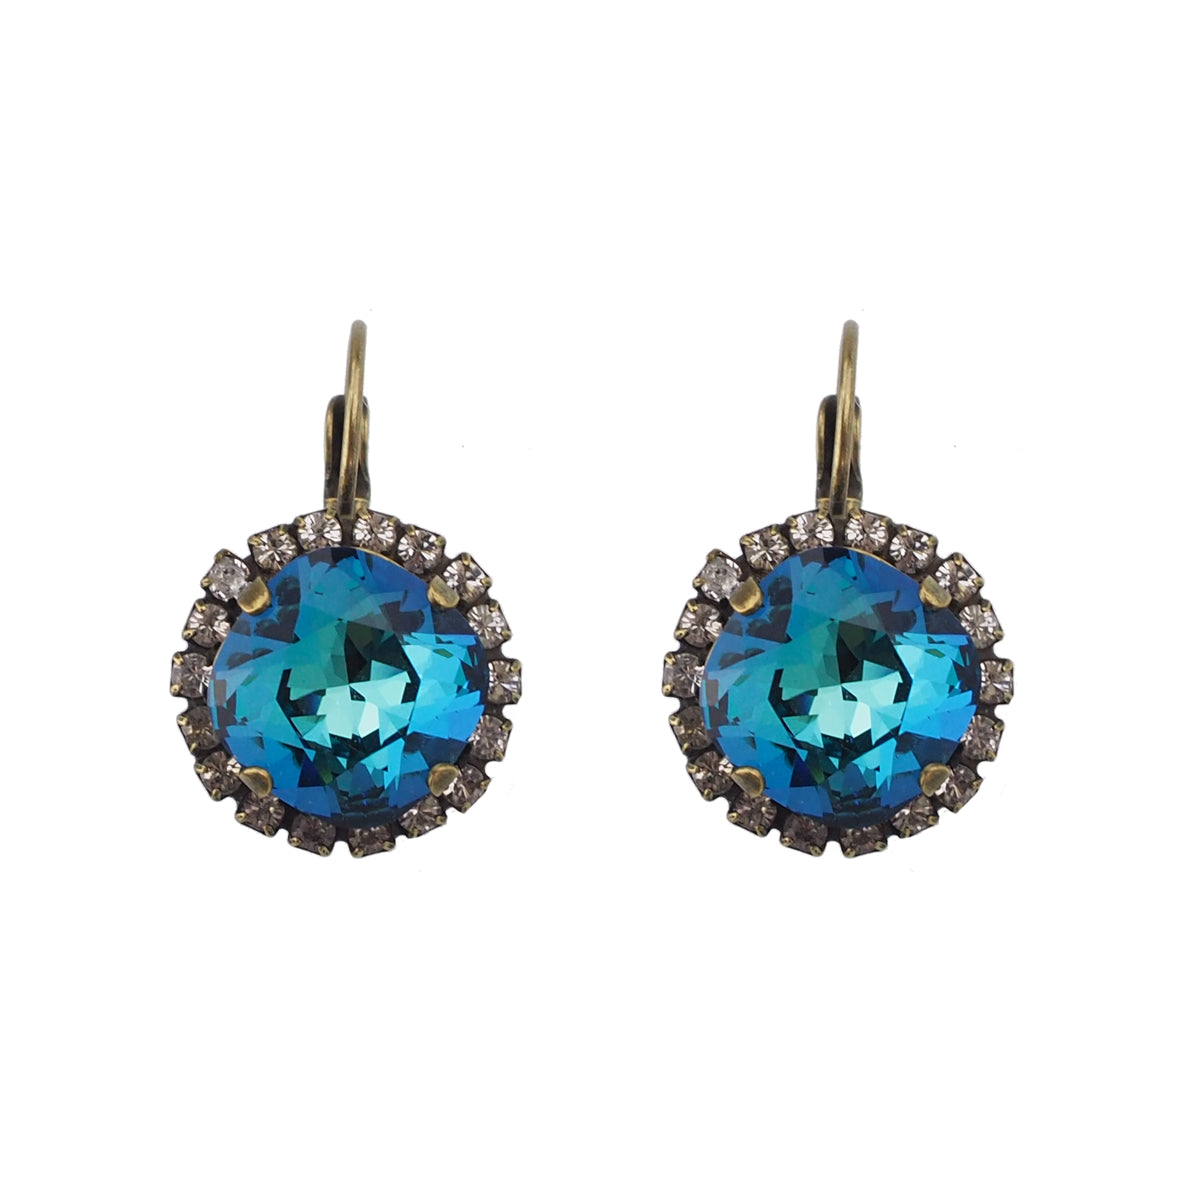 Radiance Earrings - Capri Blue